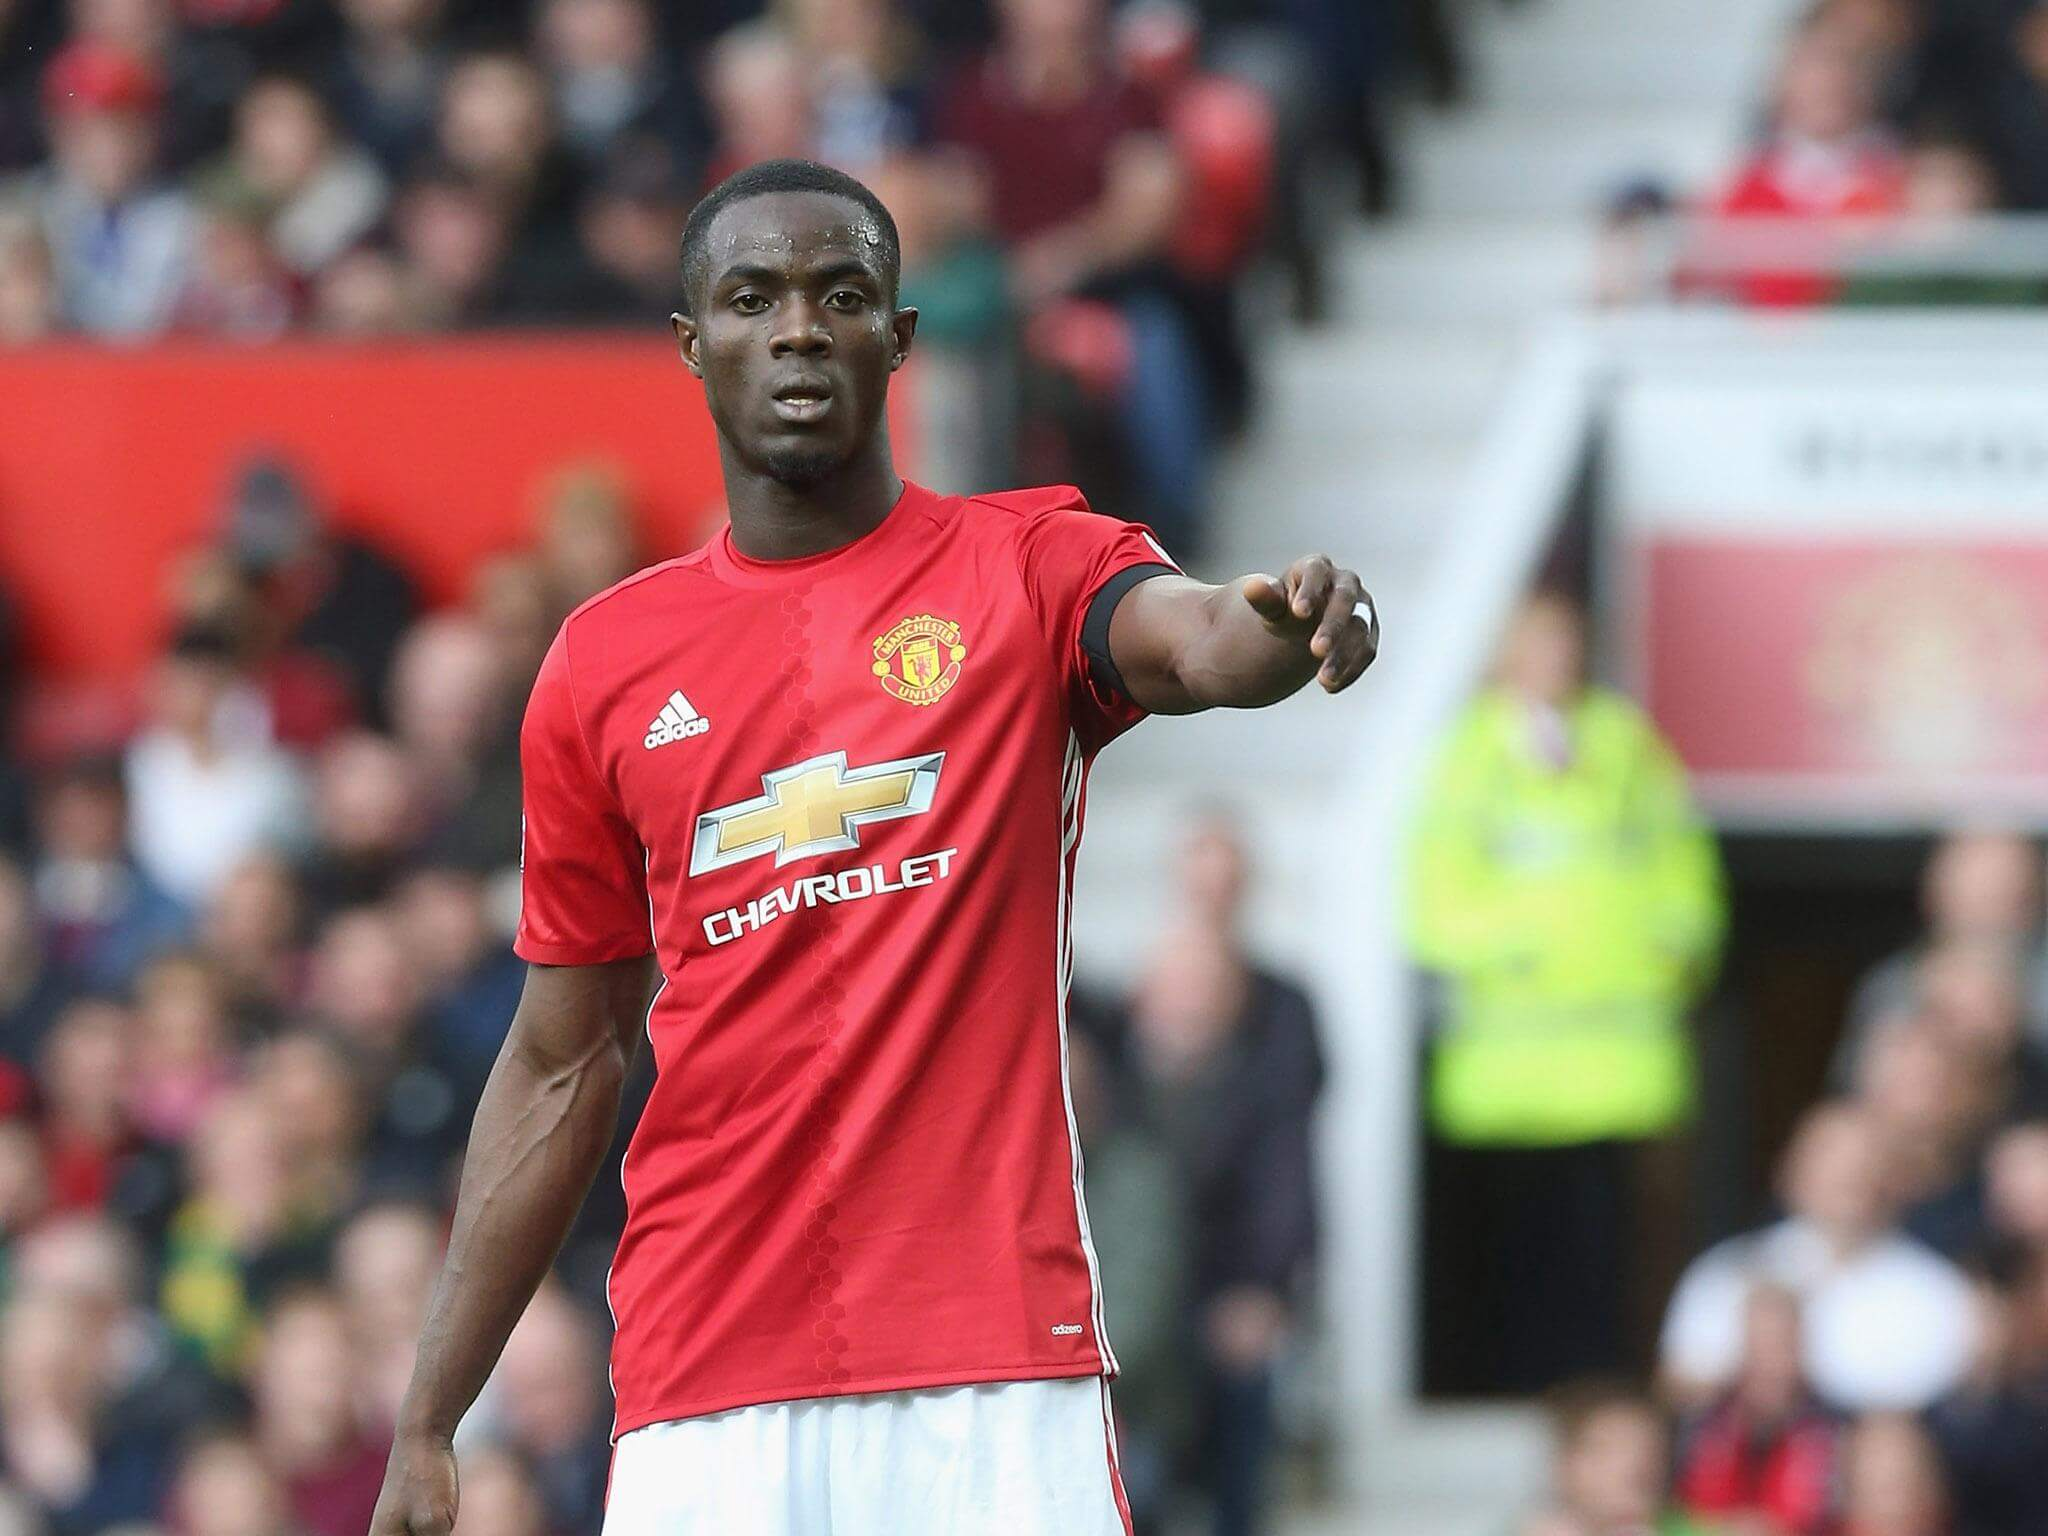 Eric Bailly of Manchester United FC has already established himself as one of the top center-backs in all of Europe. He also represents the Ivory Coast national team.